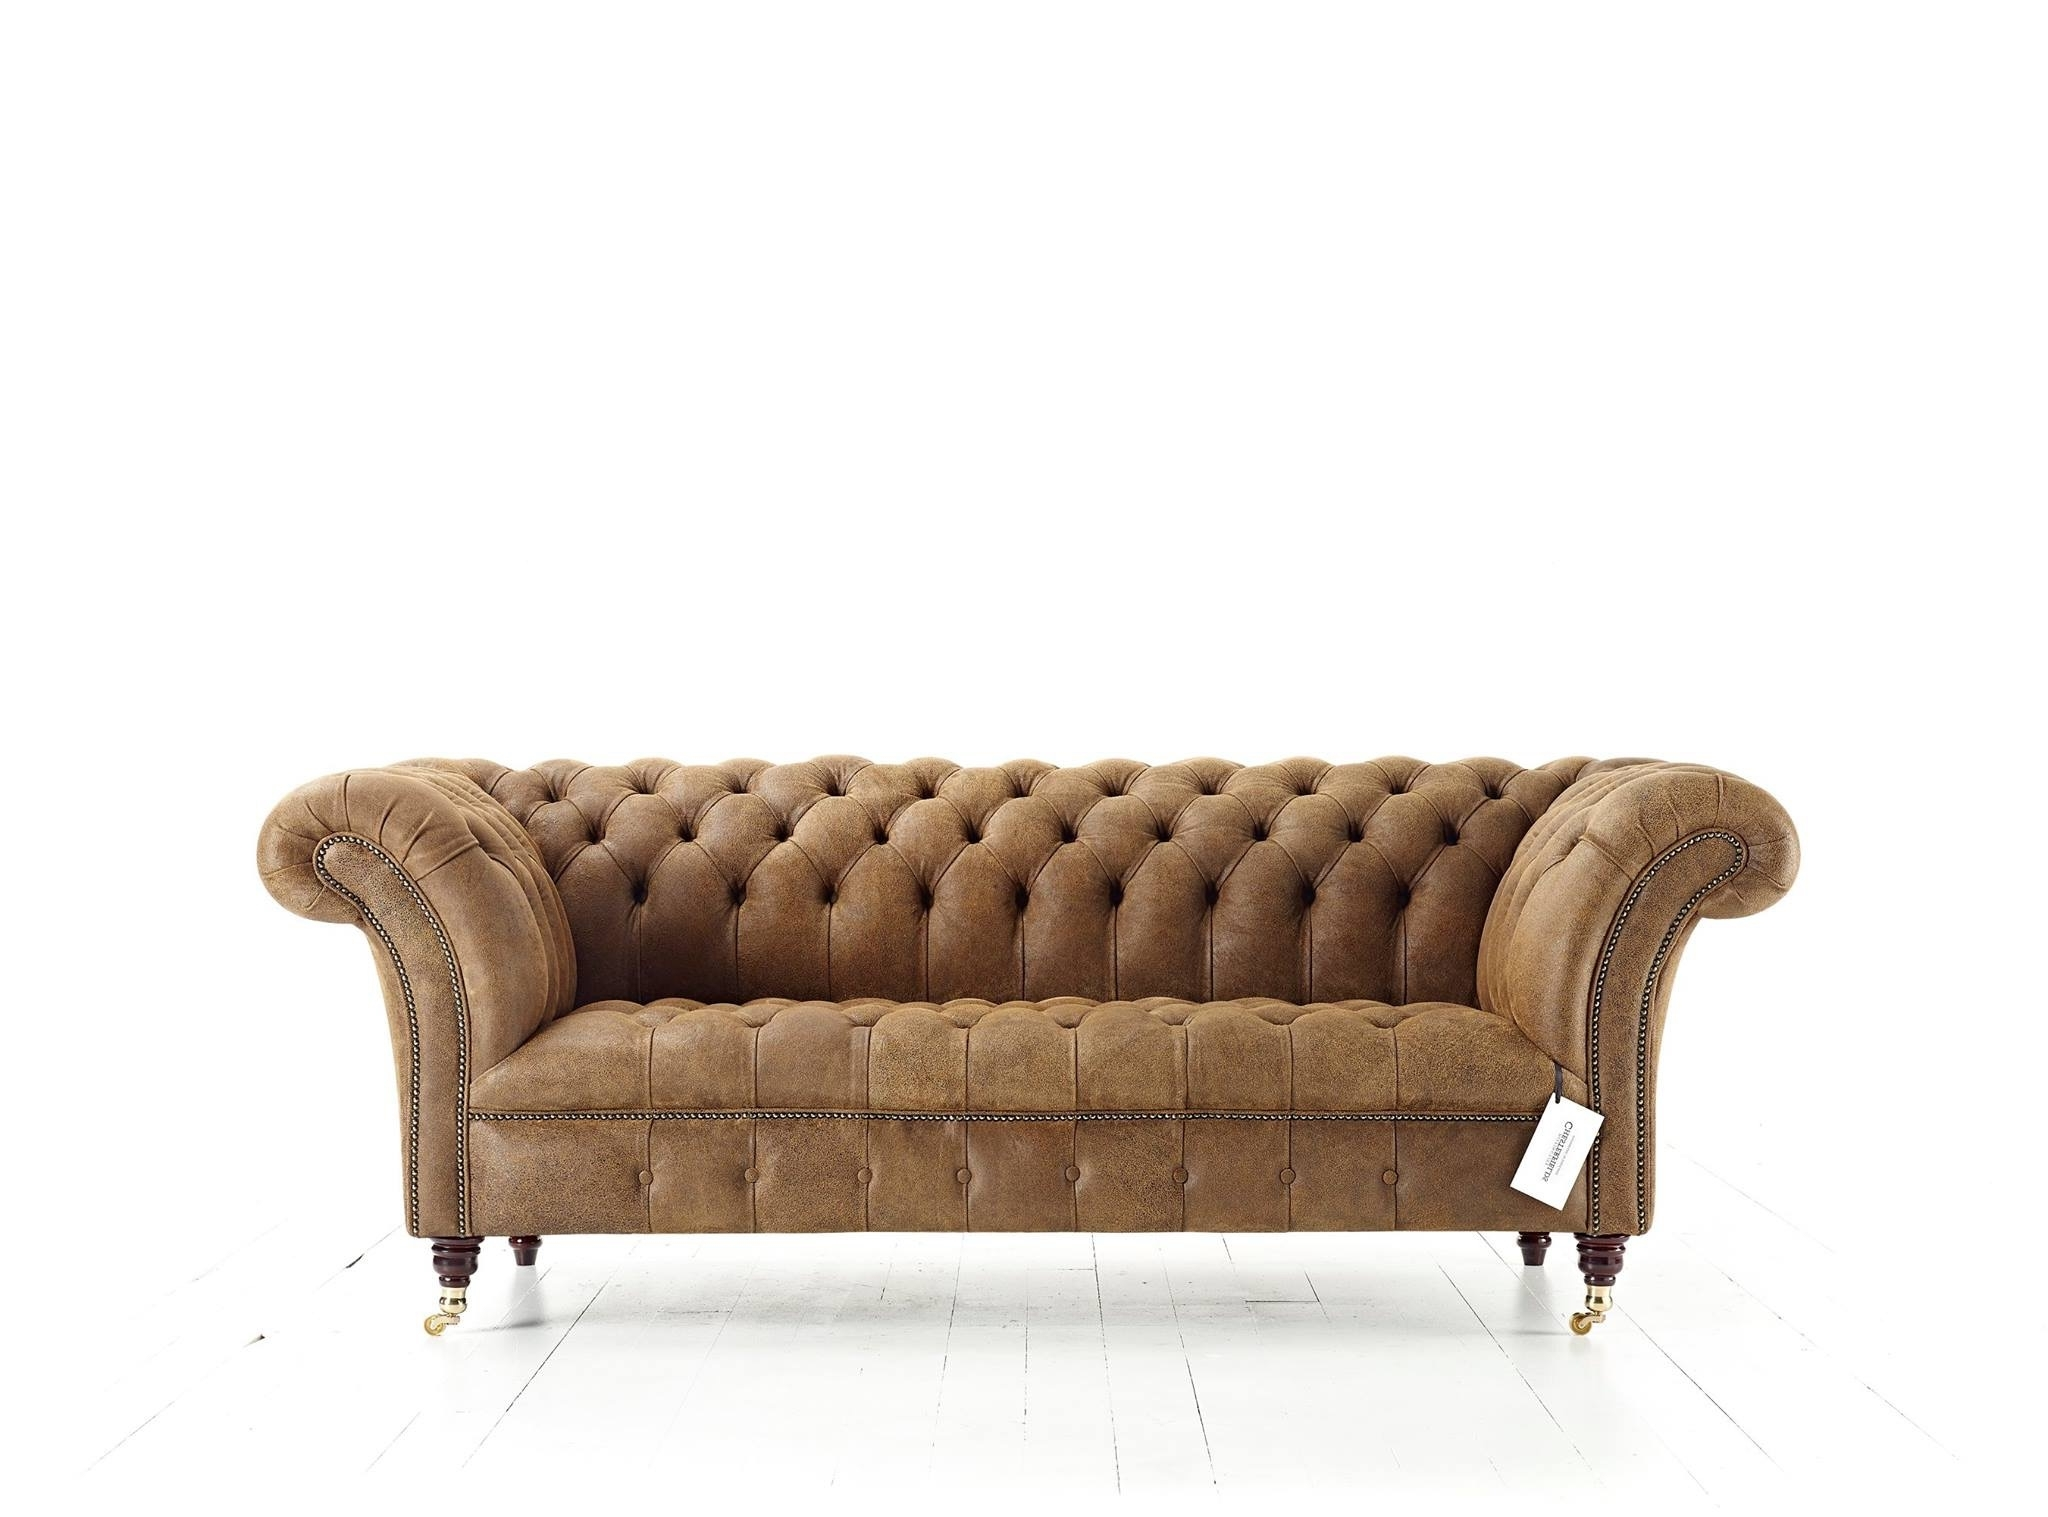 Fashionable Flair Wide Arm Chesterfield Blenheim Sofa With Tufted Button Seat Within Wide Sofa Chairs (View 5 of 20)